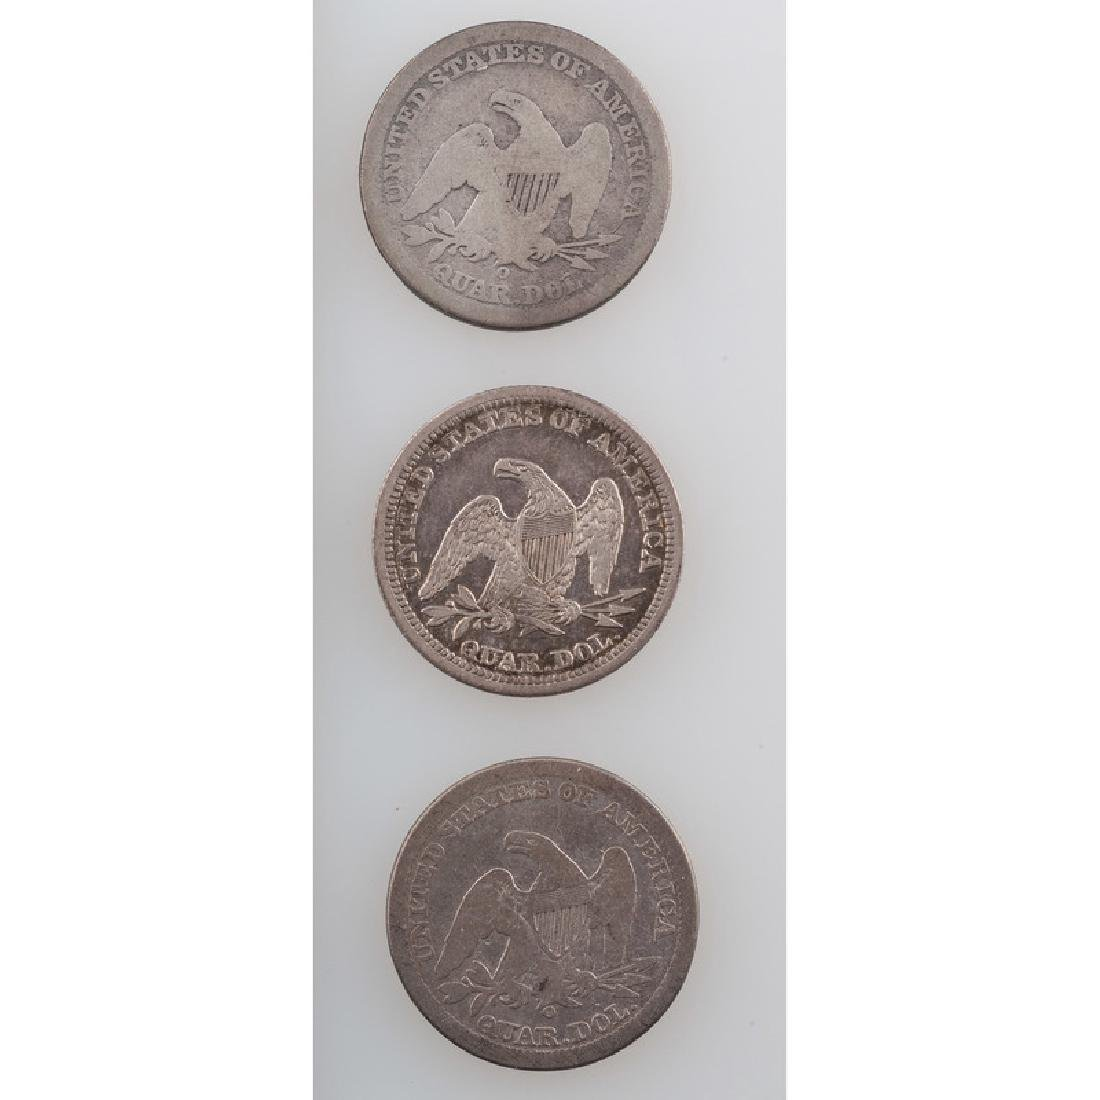 Liberty Seated Quarter Dollars 1841-1842 - 2